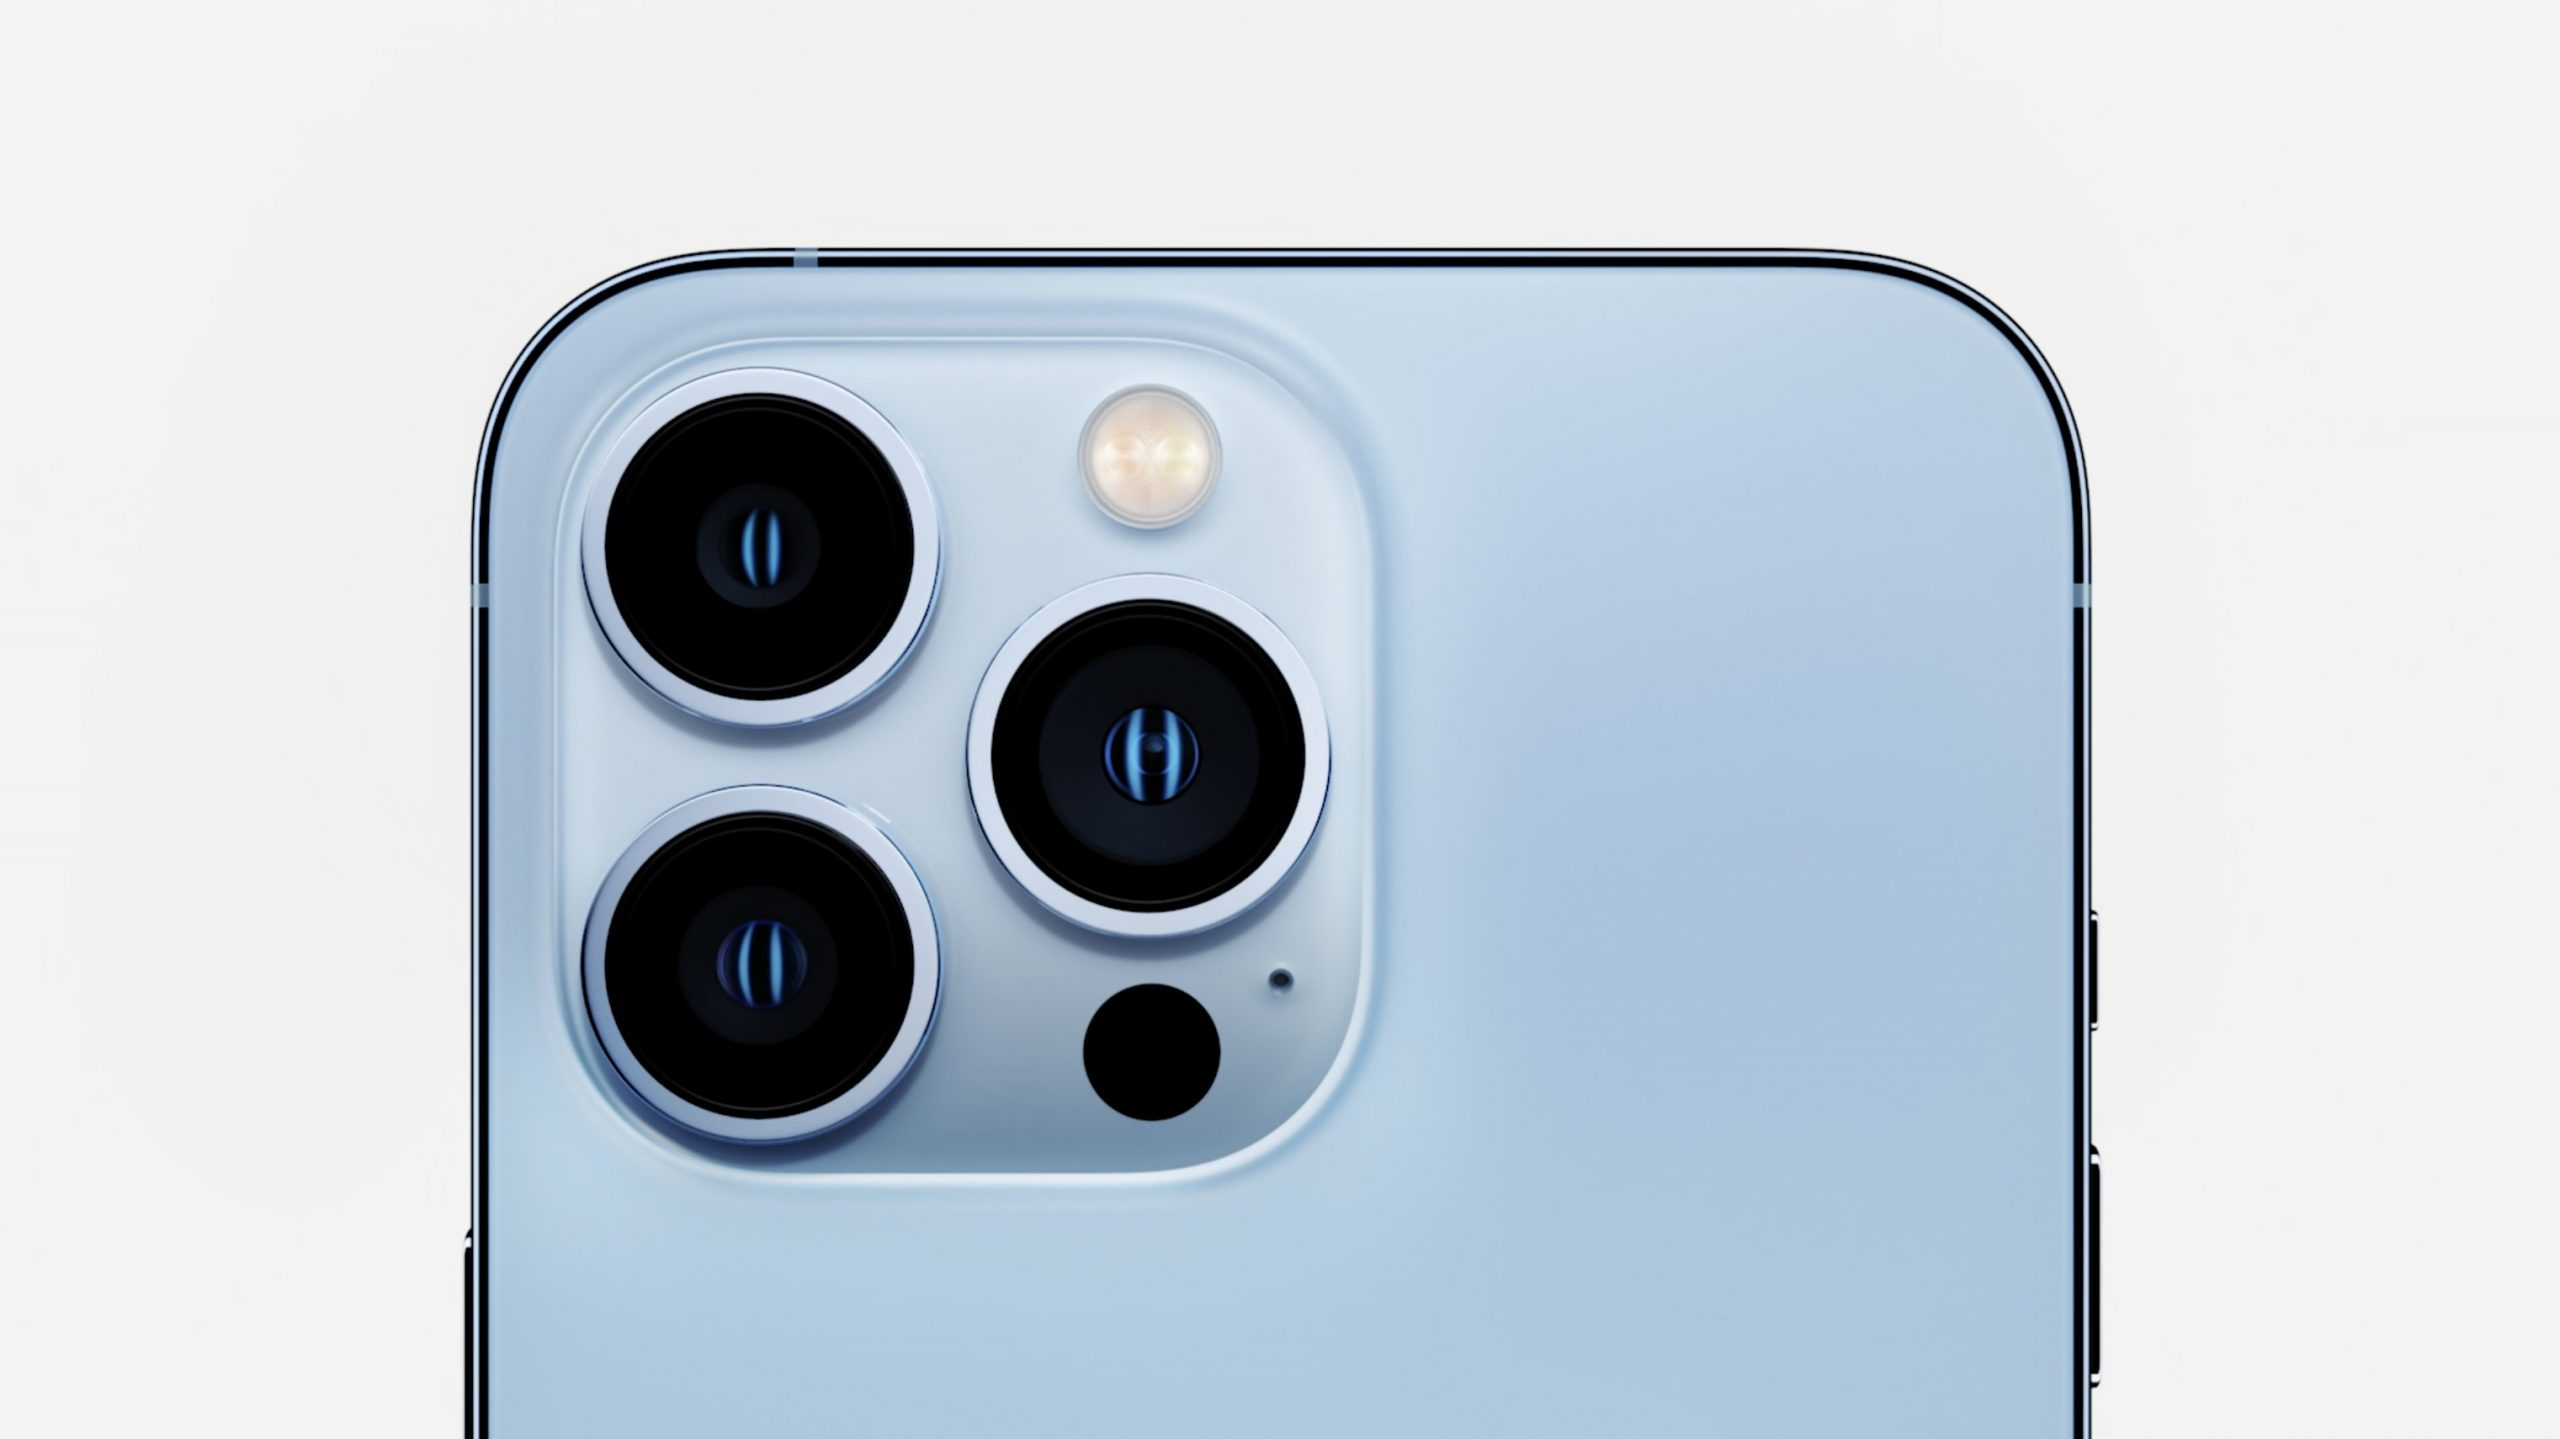 E Q6YYjXEAg5wOb scaled - Apple unveils powerful new iPhone 13 Pro and iPhone 13 Pro max